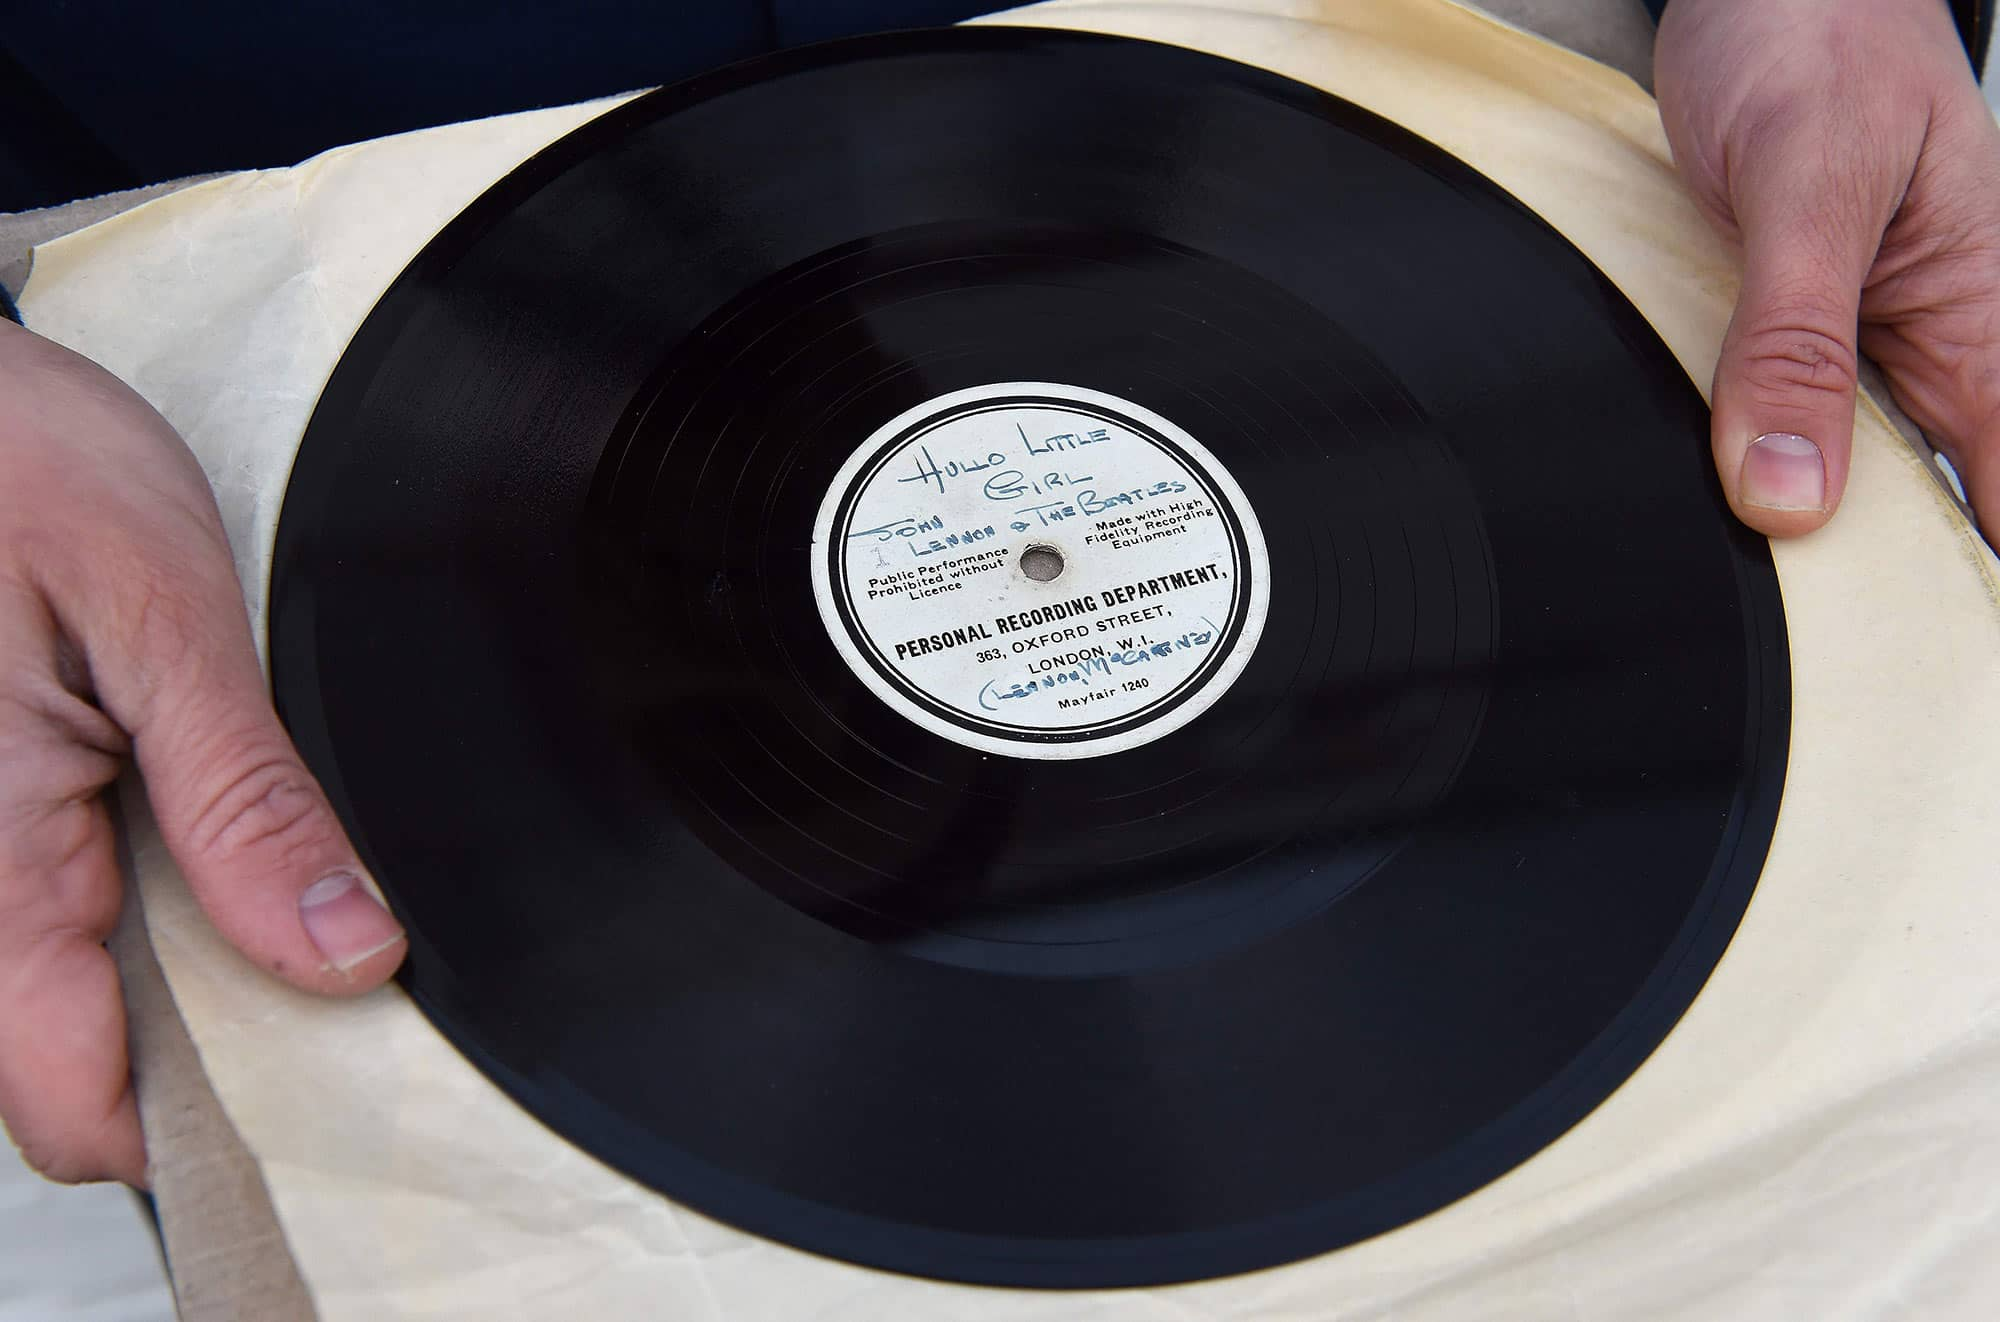 http://i0.wp.com/www.beatlesbible.com/wp/media/hello-little-girl-decca-hmv-acetate_01.jpg